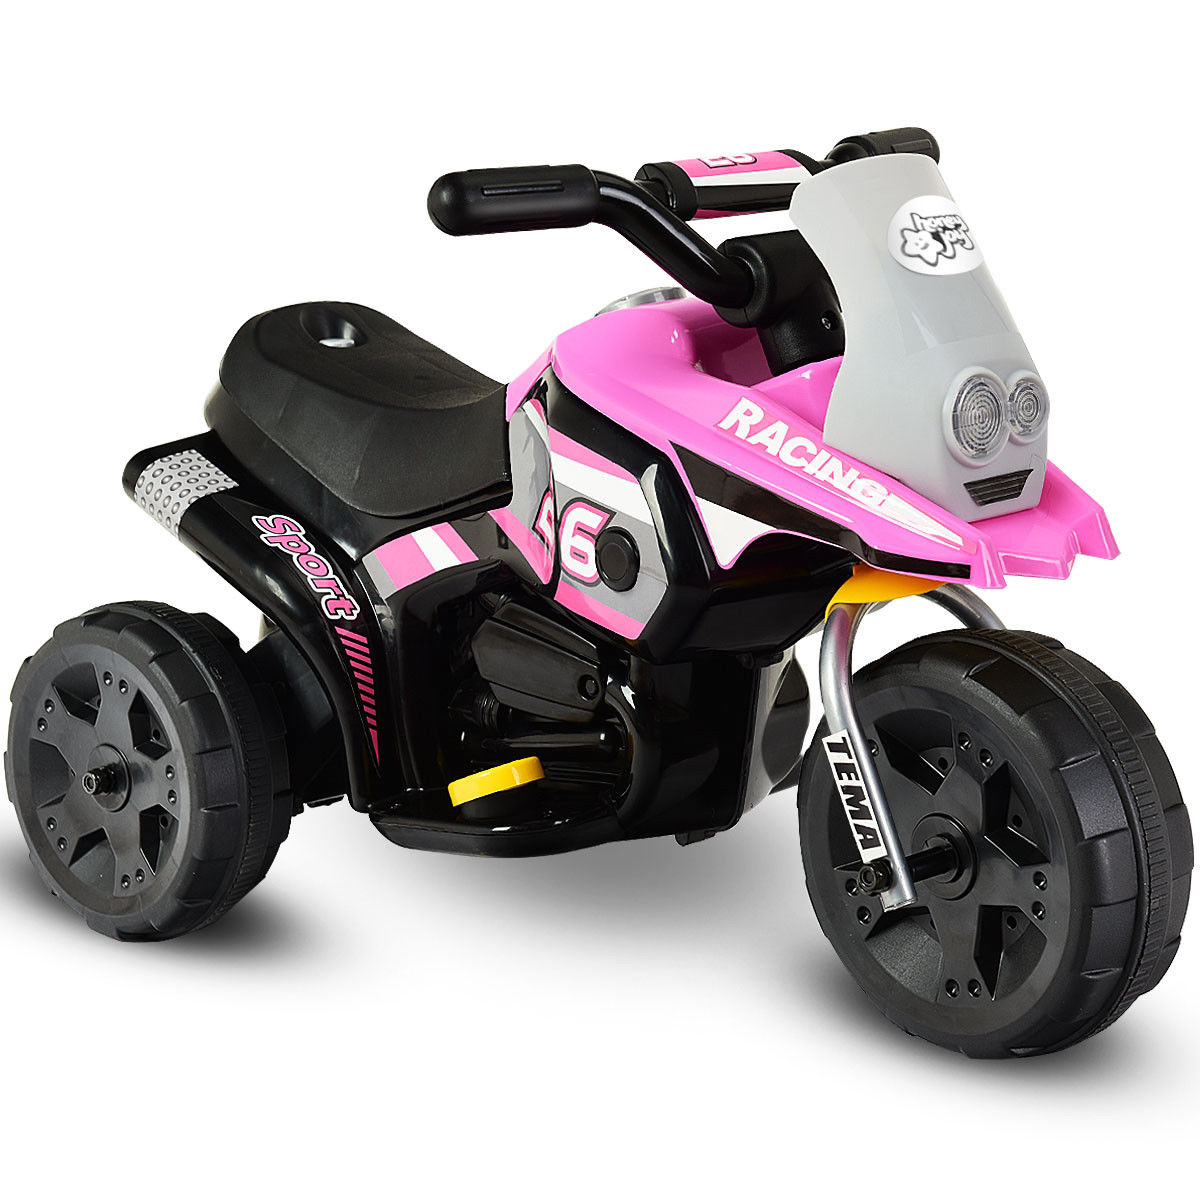 6V Kids Ride On Motorcycle Battery Powered 3 Wheel Bicycle Electric Toy Pink by Costway